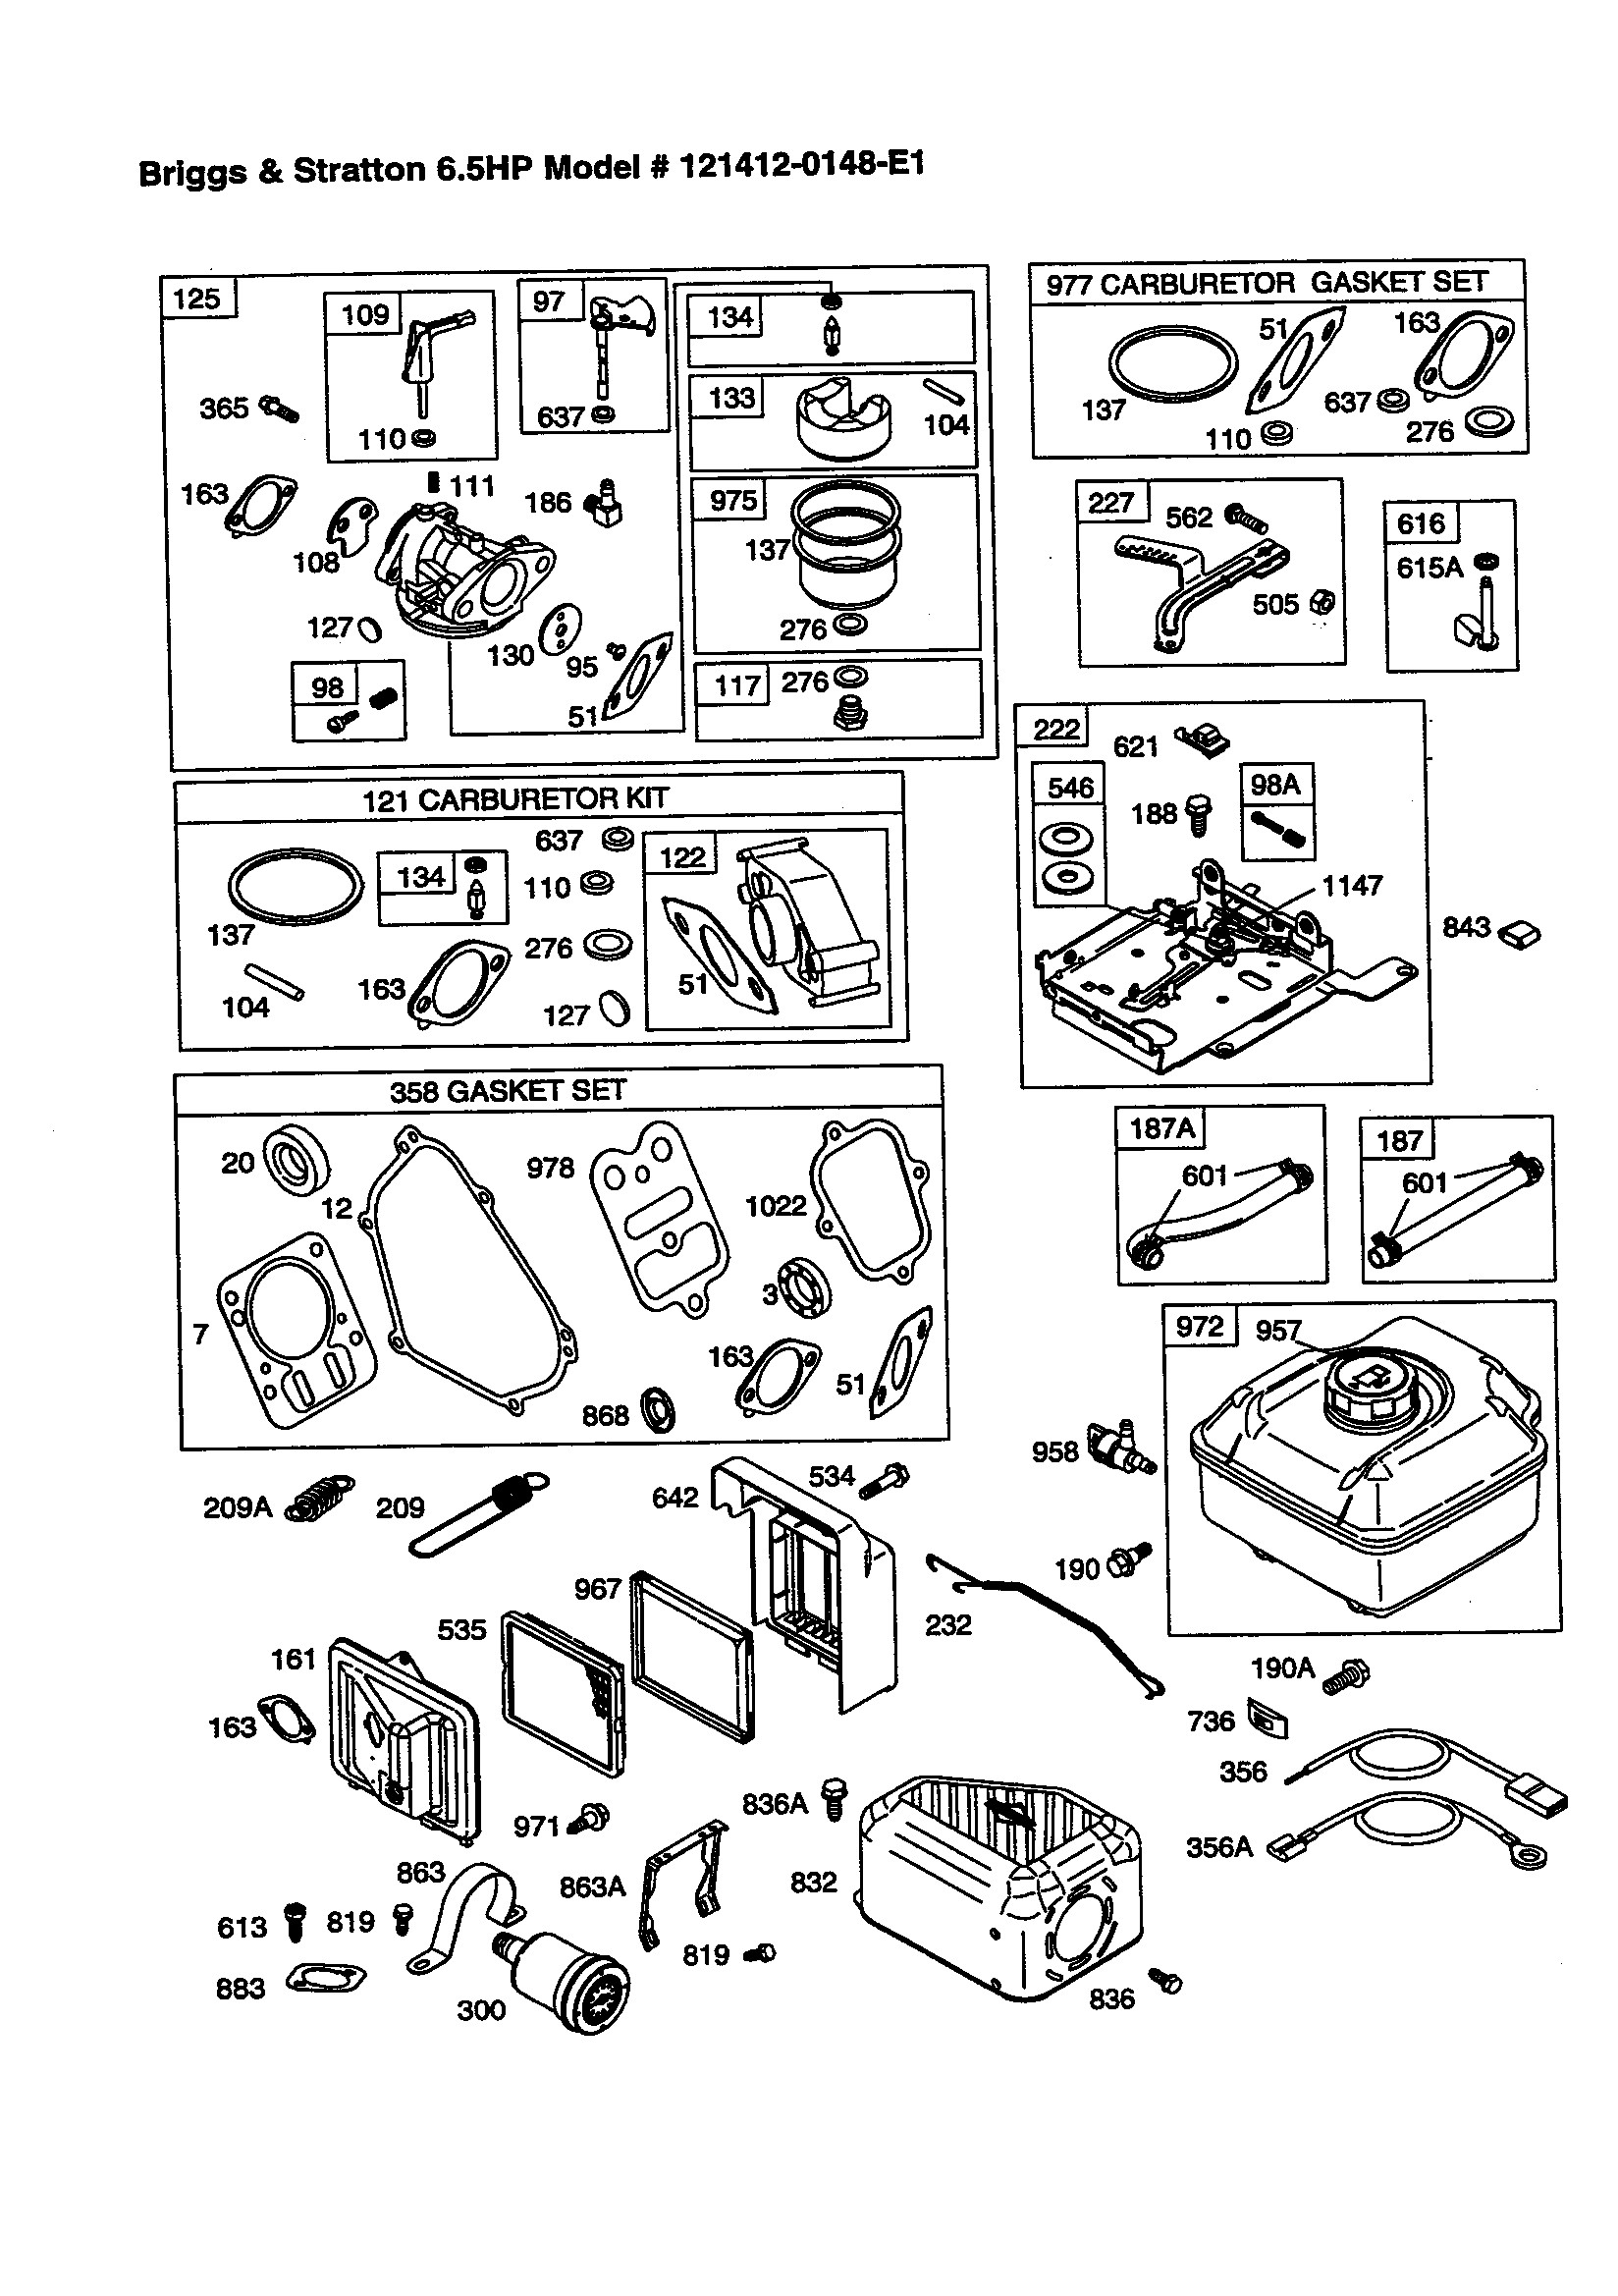 Diagram Of Briggs And Stratton Lawn Mower Engine Images Craftsman Fancy Parts Vignette